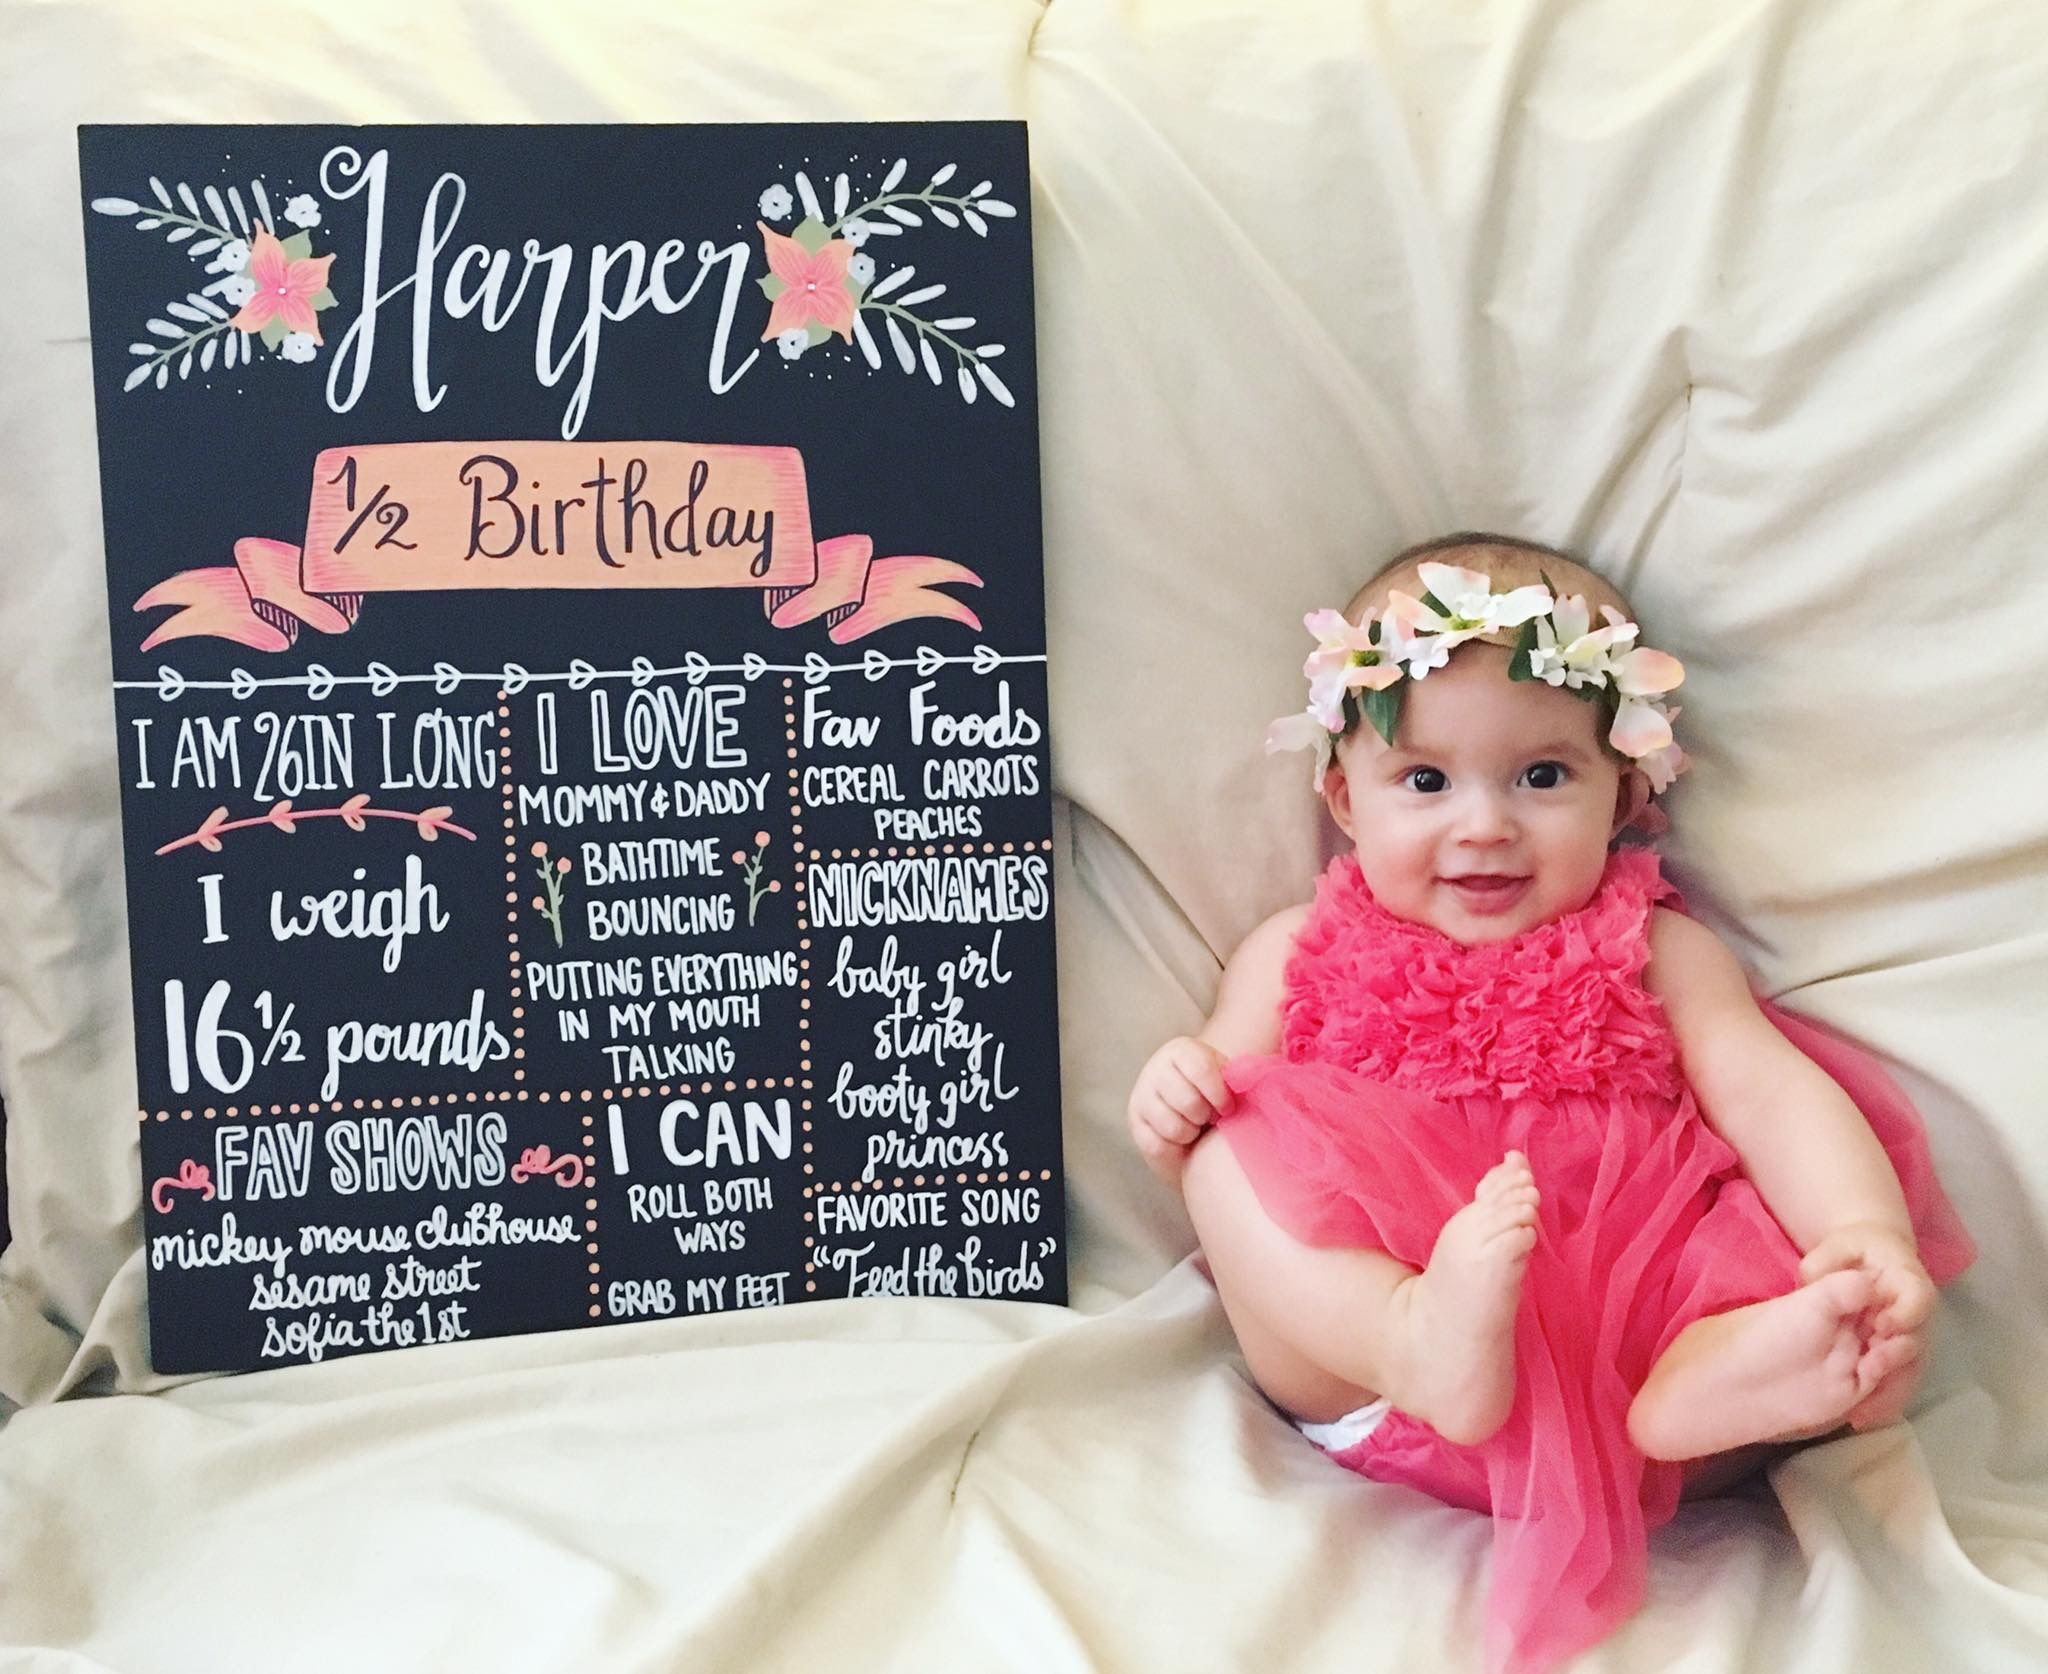 6 Month Half Birthday Baby Picture With Chalkboard And Flower Crown